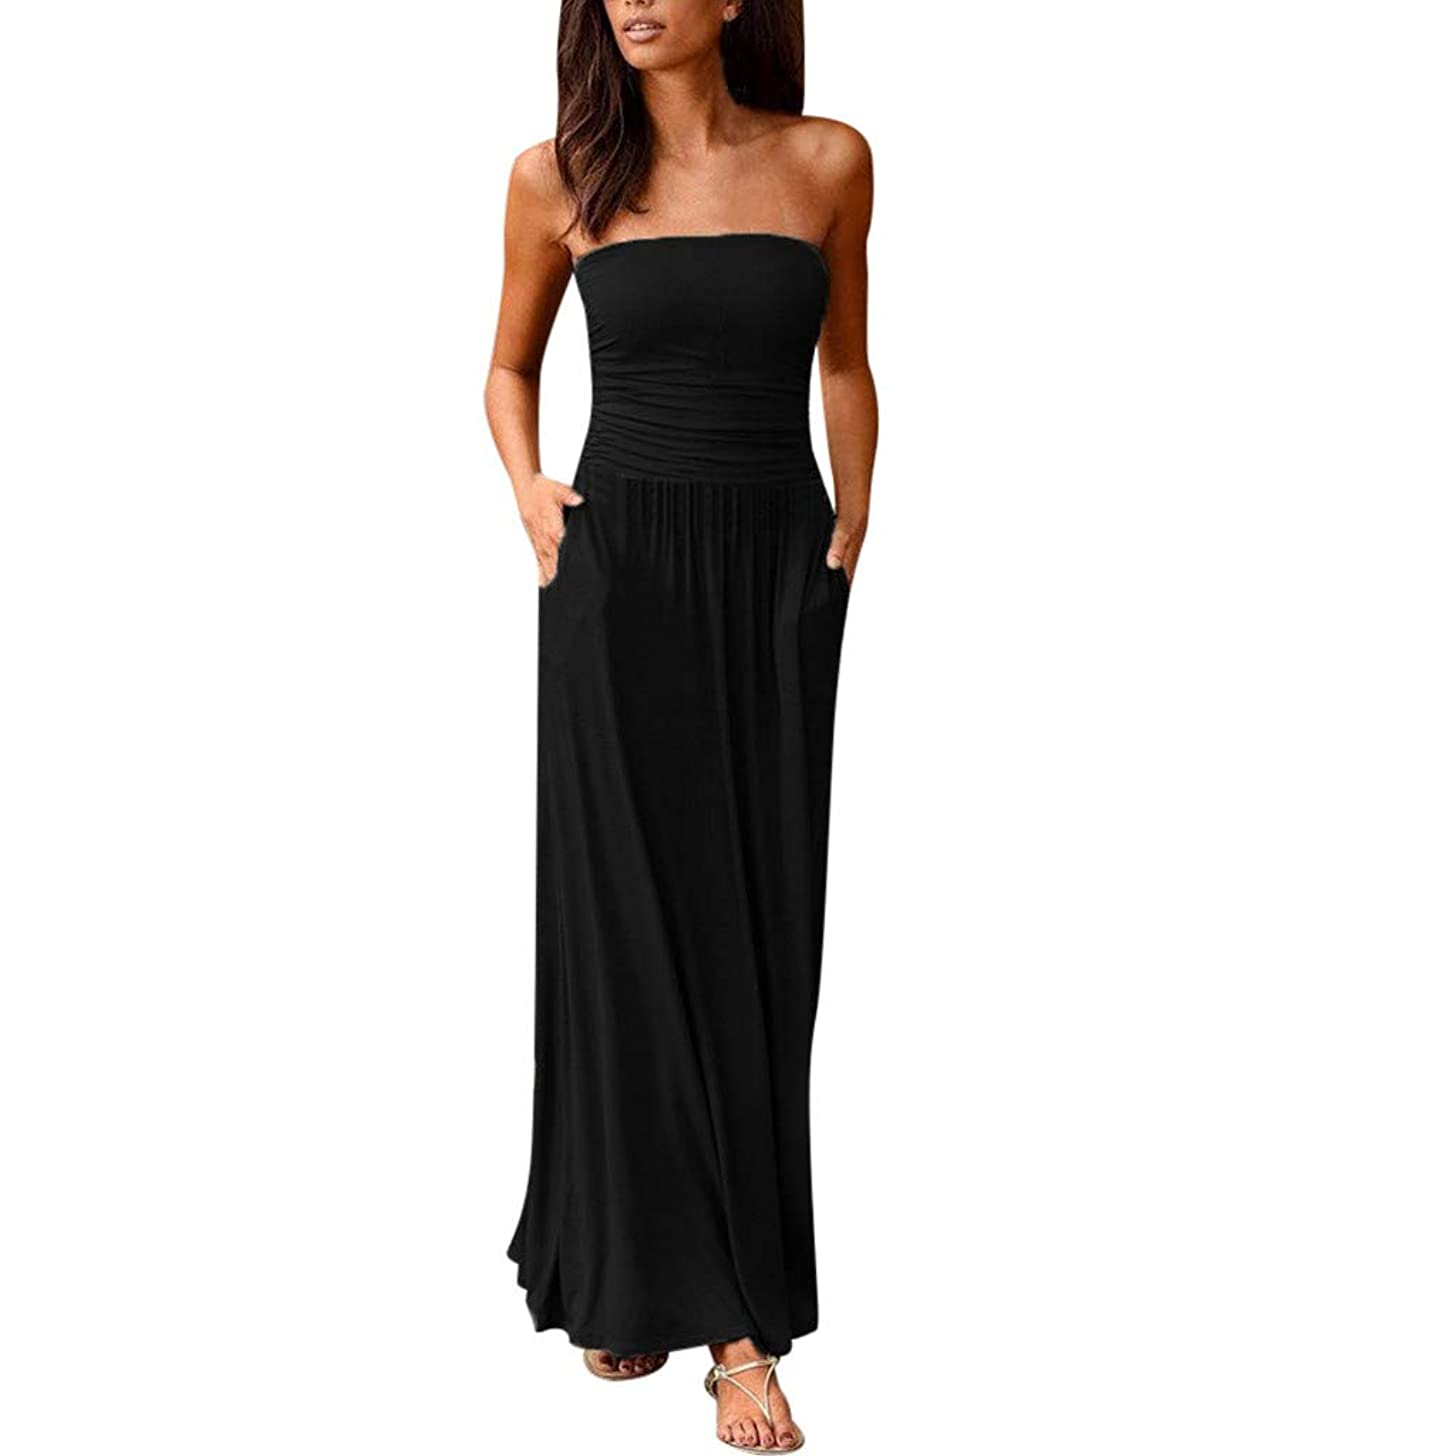 Women's Summer Casual Off Shoulder Sleeveless Pleated Loose Plain Maxi Dress with Pockets